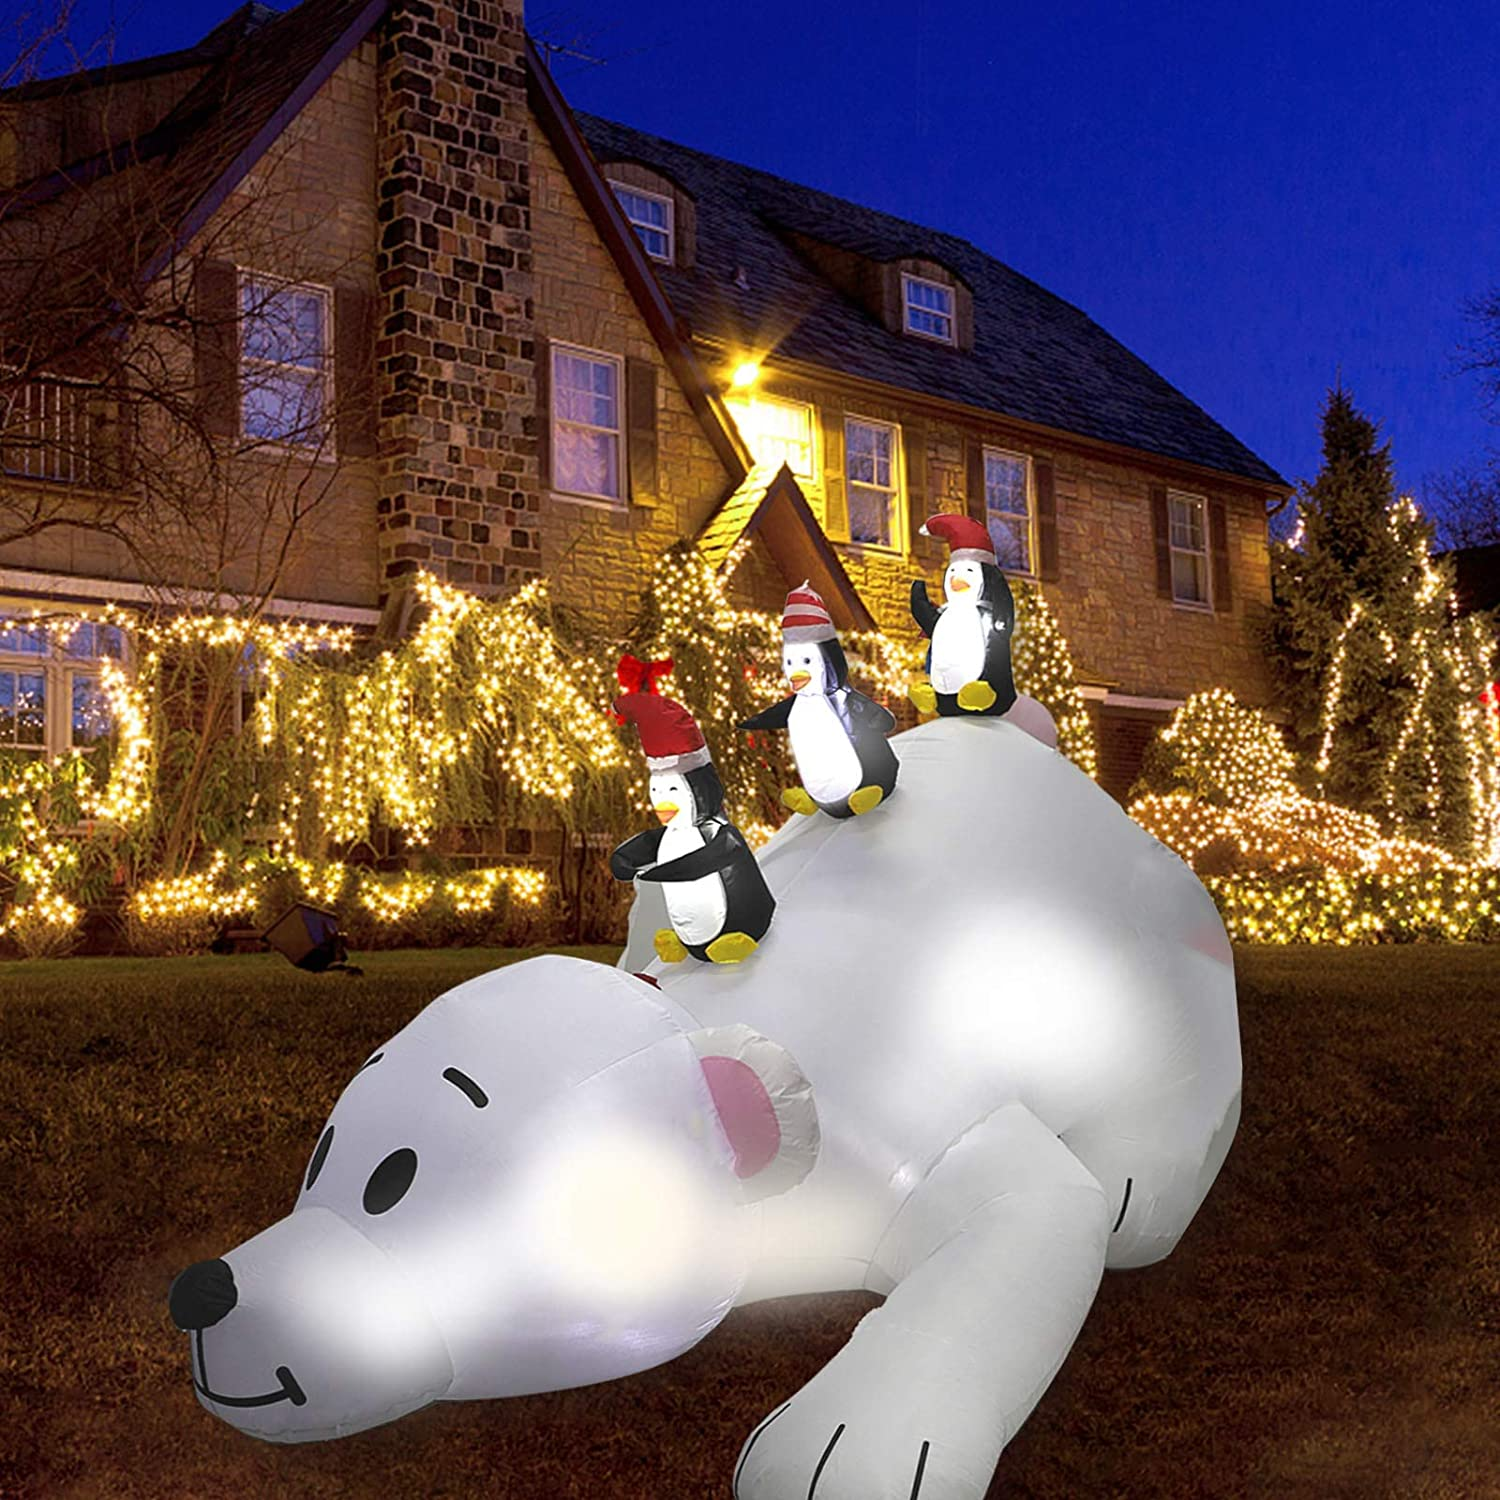 MorTime 6 FT Christmas Inflatable Polar Bear, Blow up Airblown Lighted 3 Penguins on Polar Bear Decor with LED Lights for Christmas Outdoor Yard Party Shopping Mall Decorations